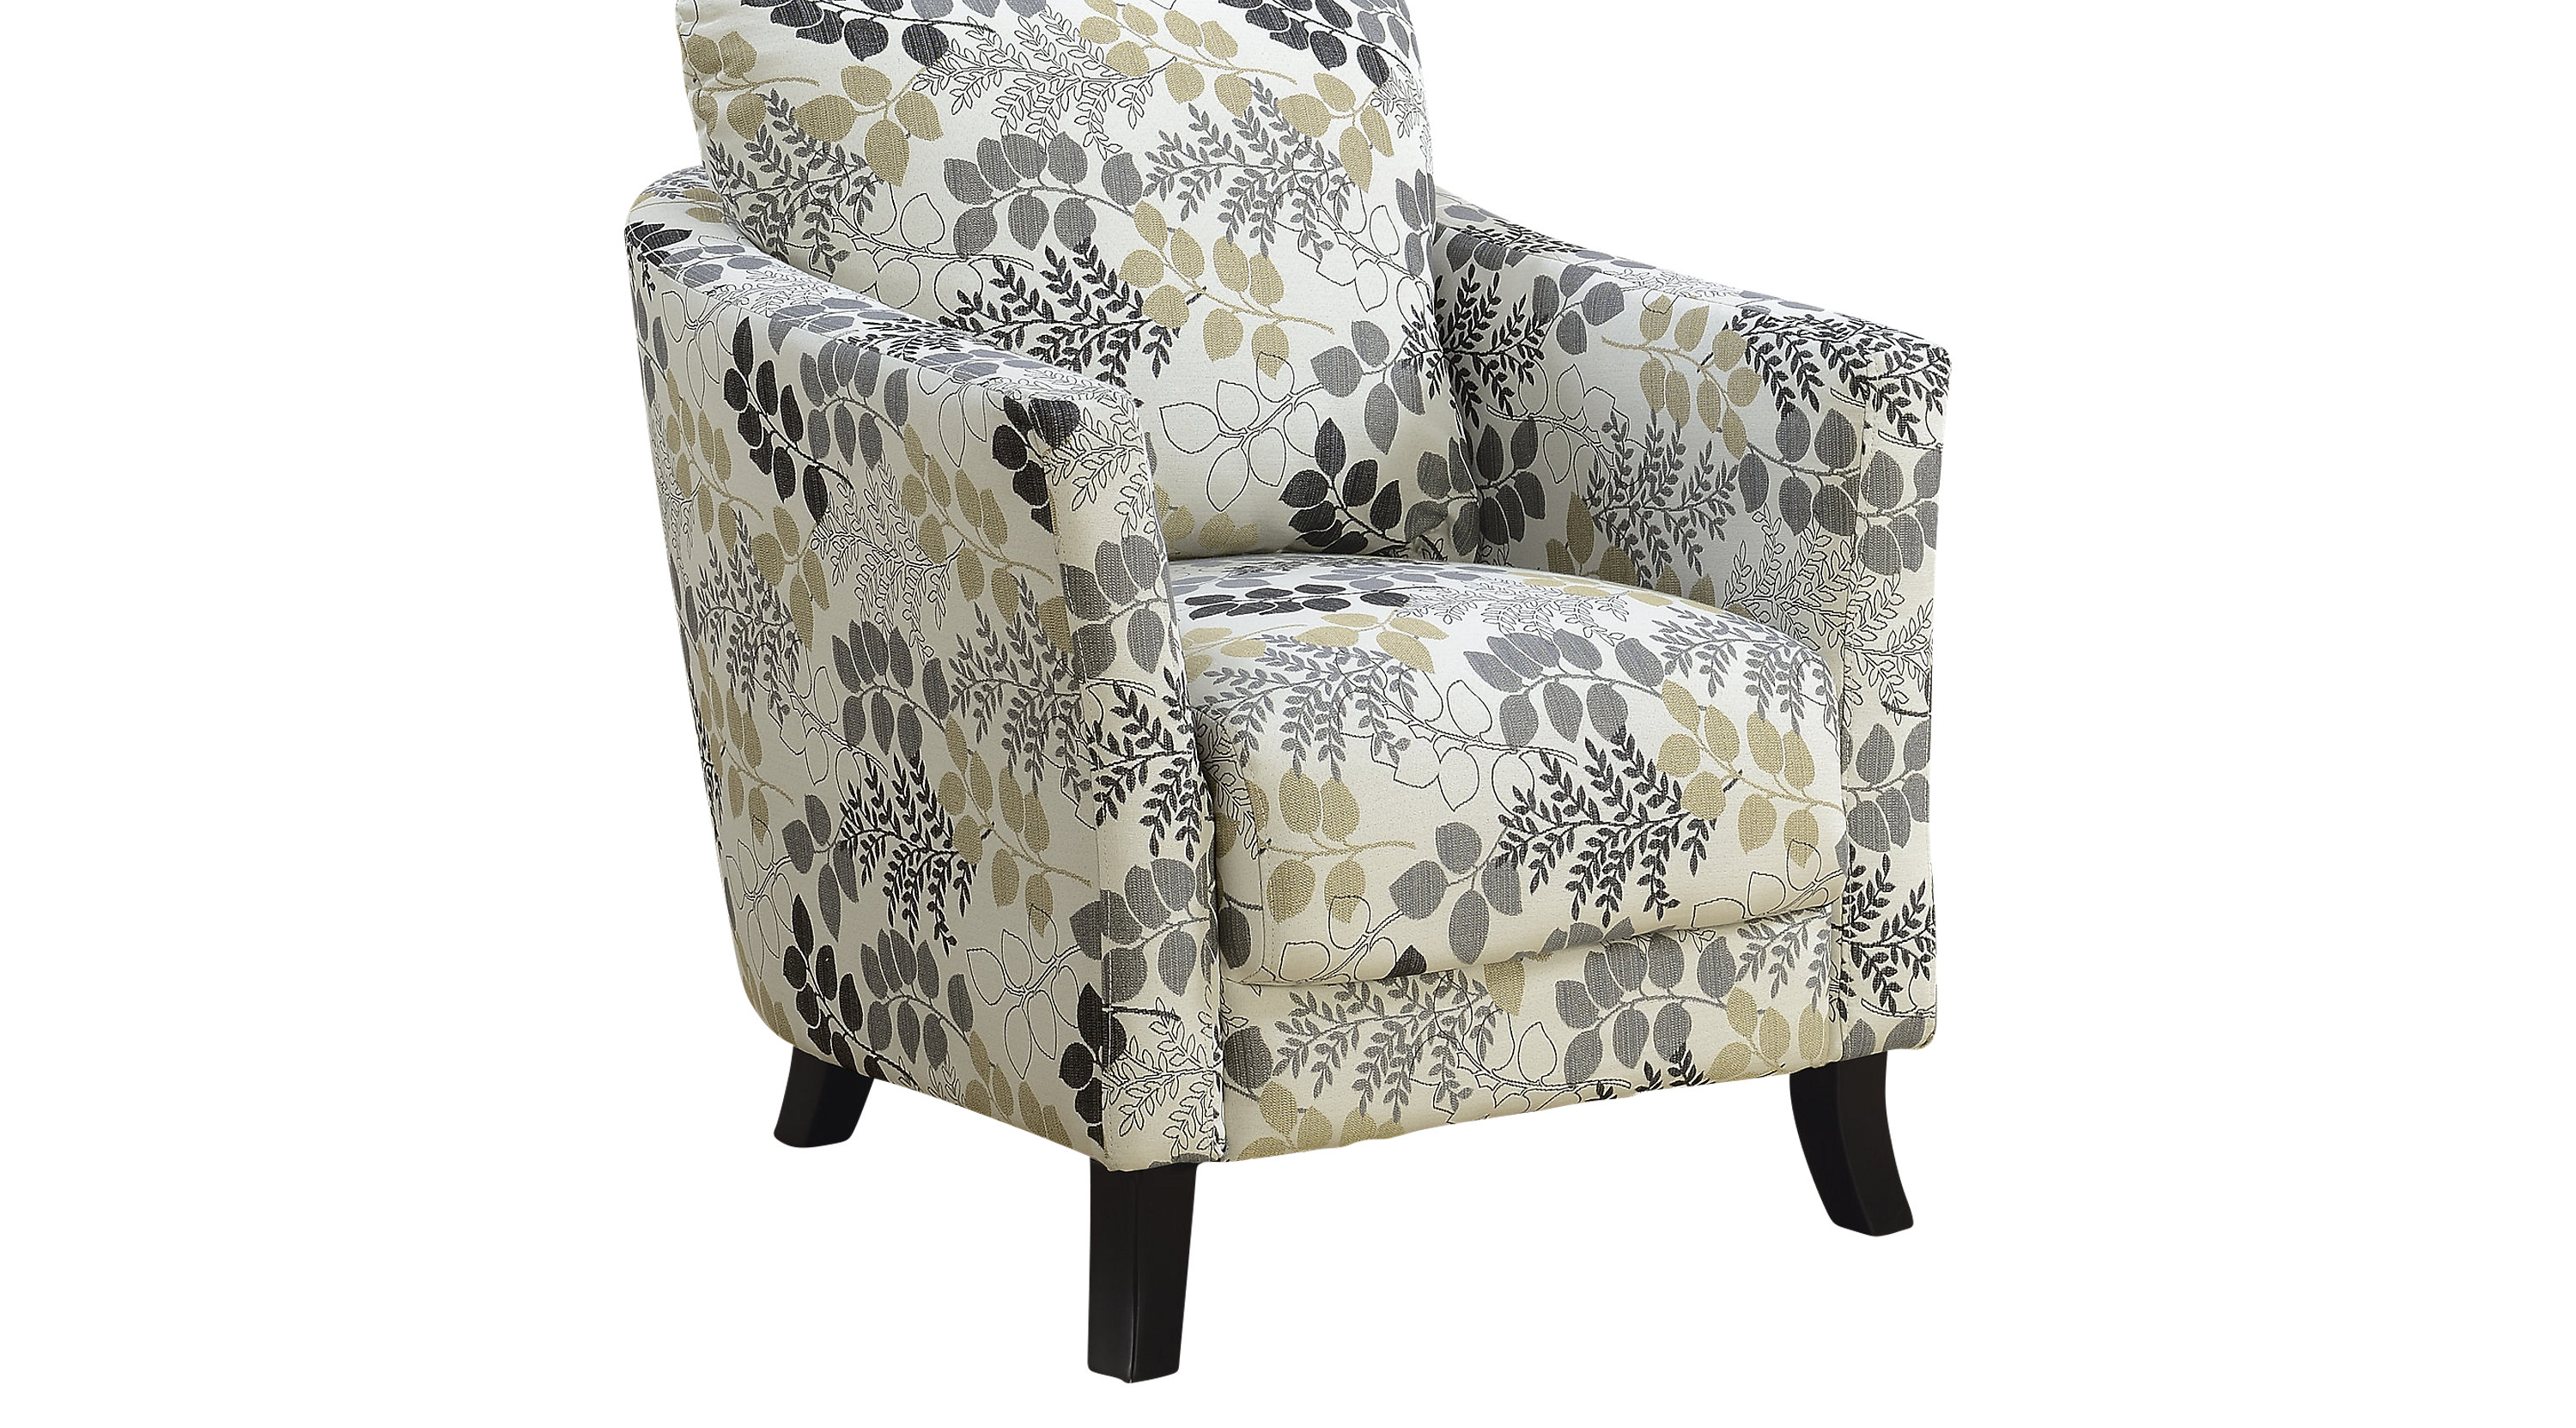 419 99 Fawnhollow Beige Accent Chair Upholstered Transitional Polyester